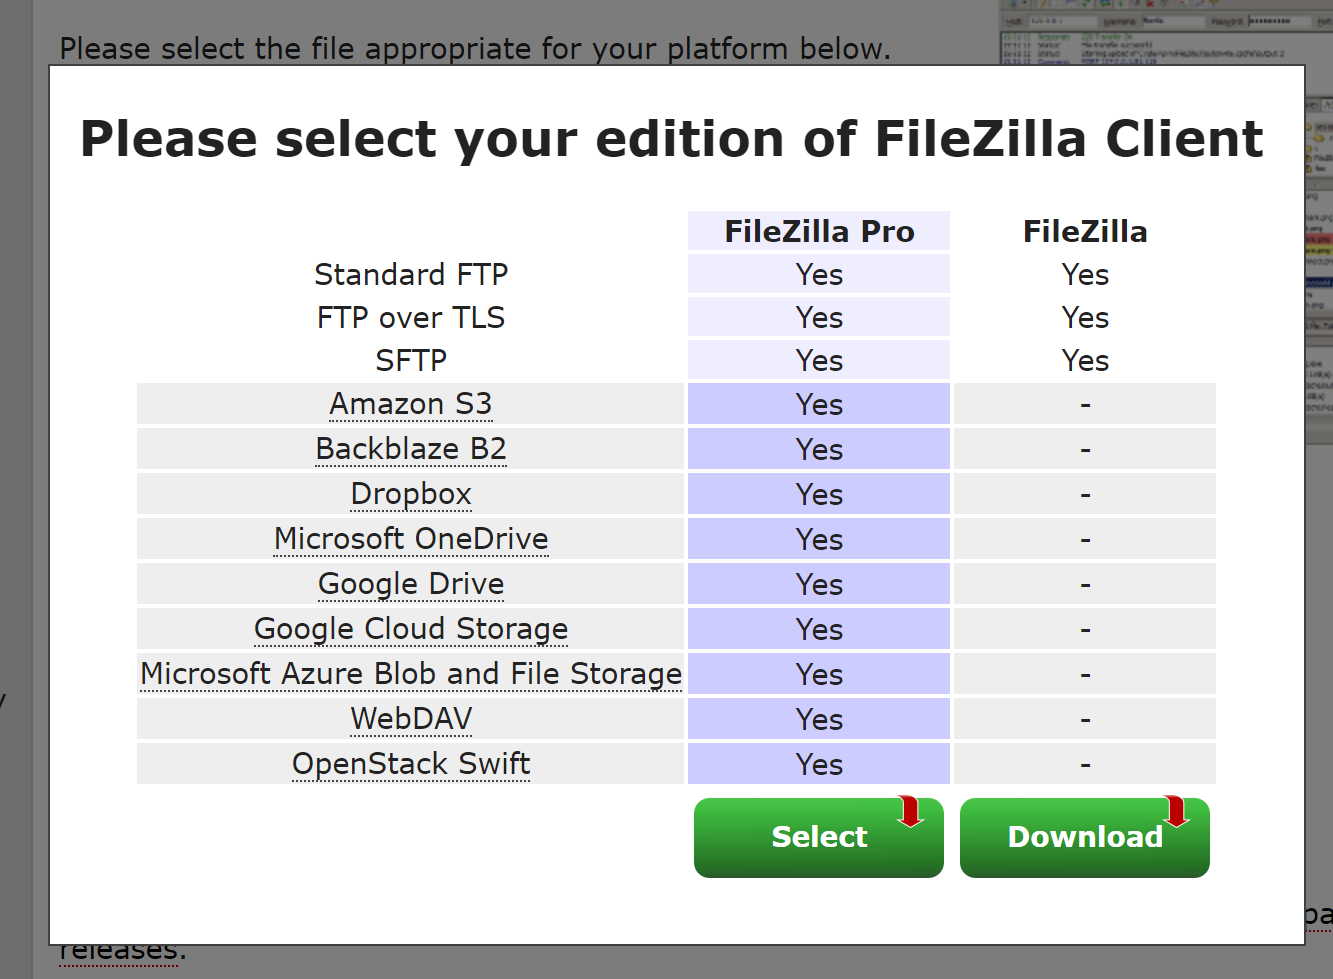 Please select your edition of FileZilla client